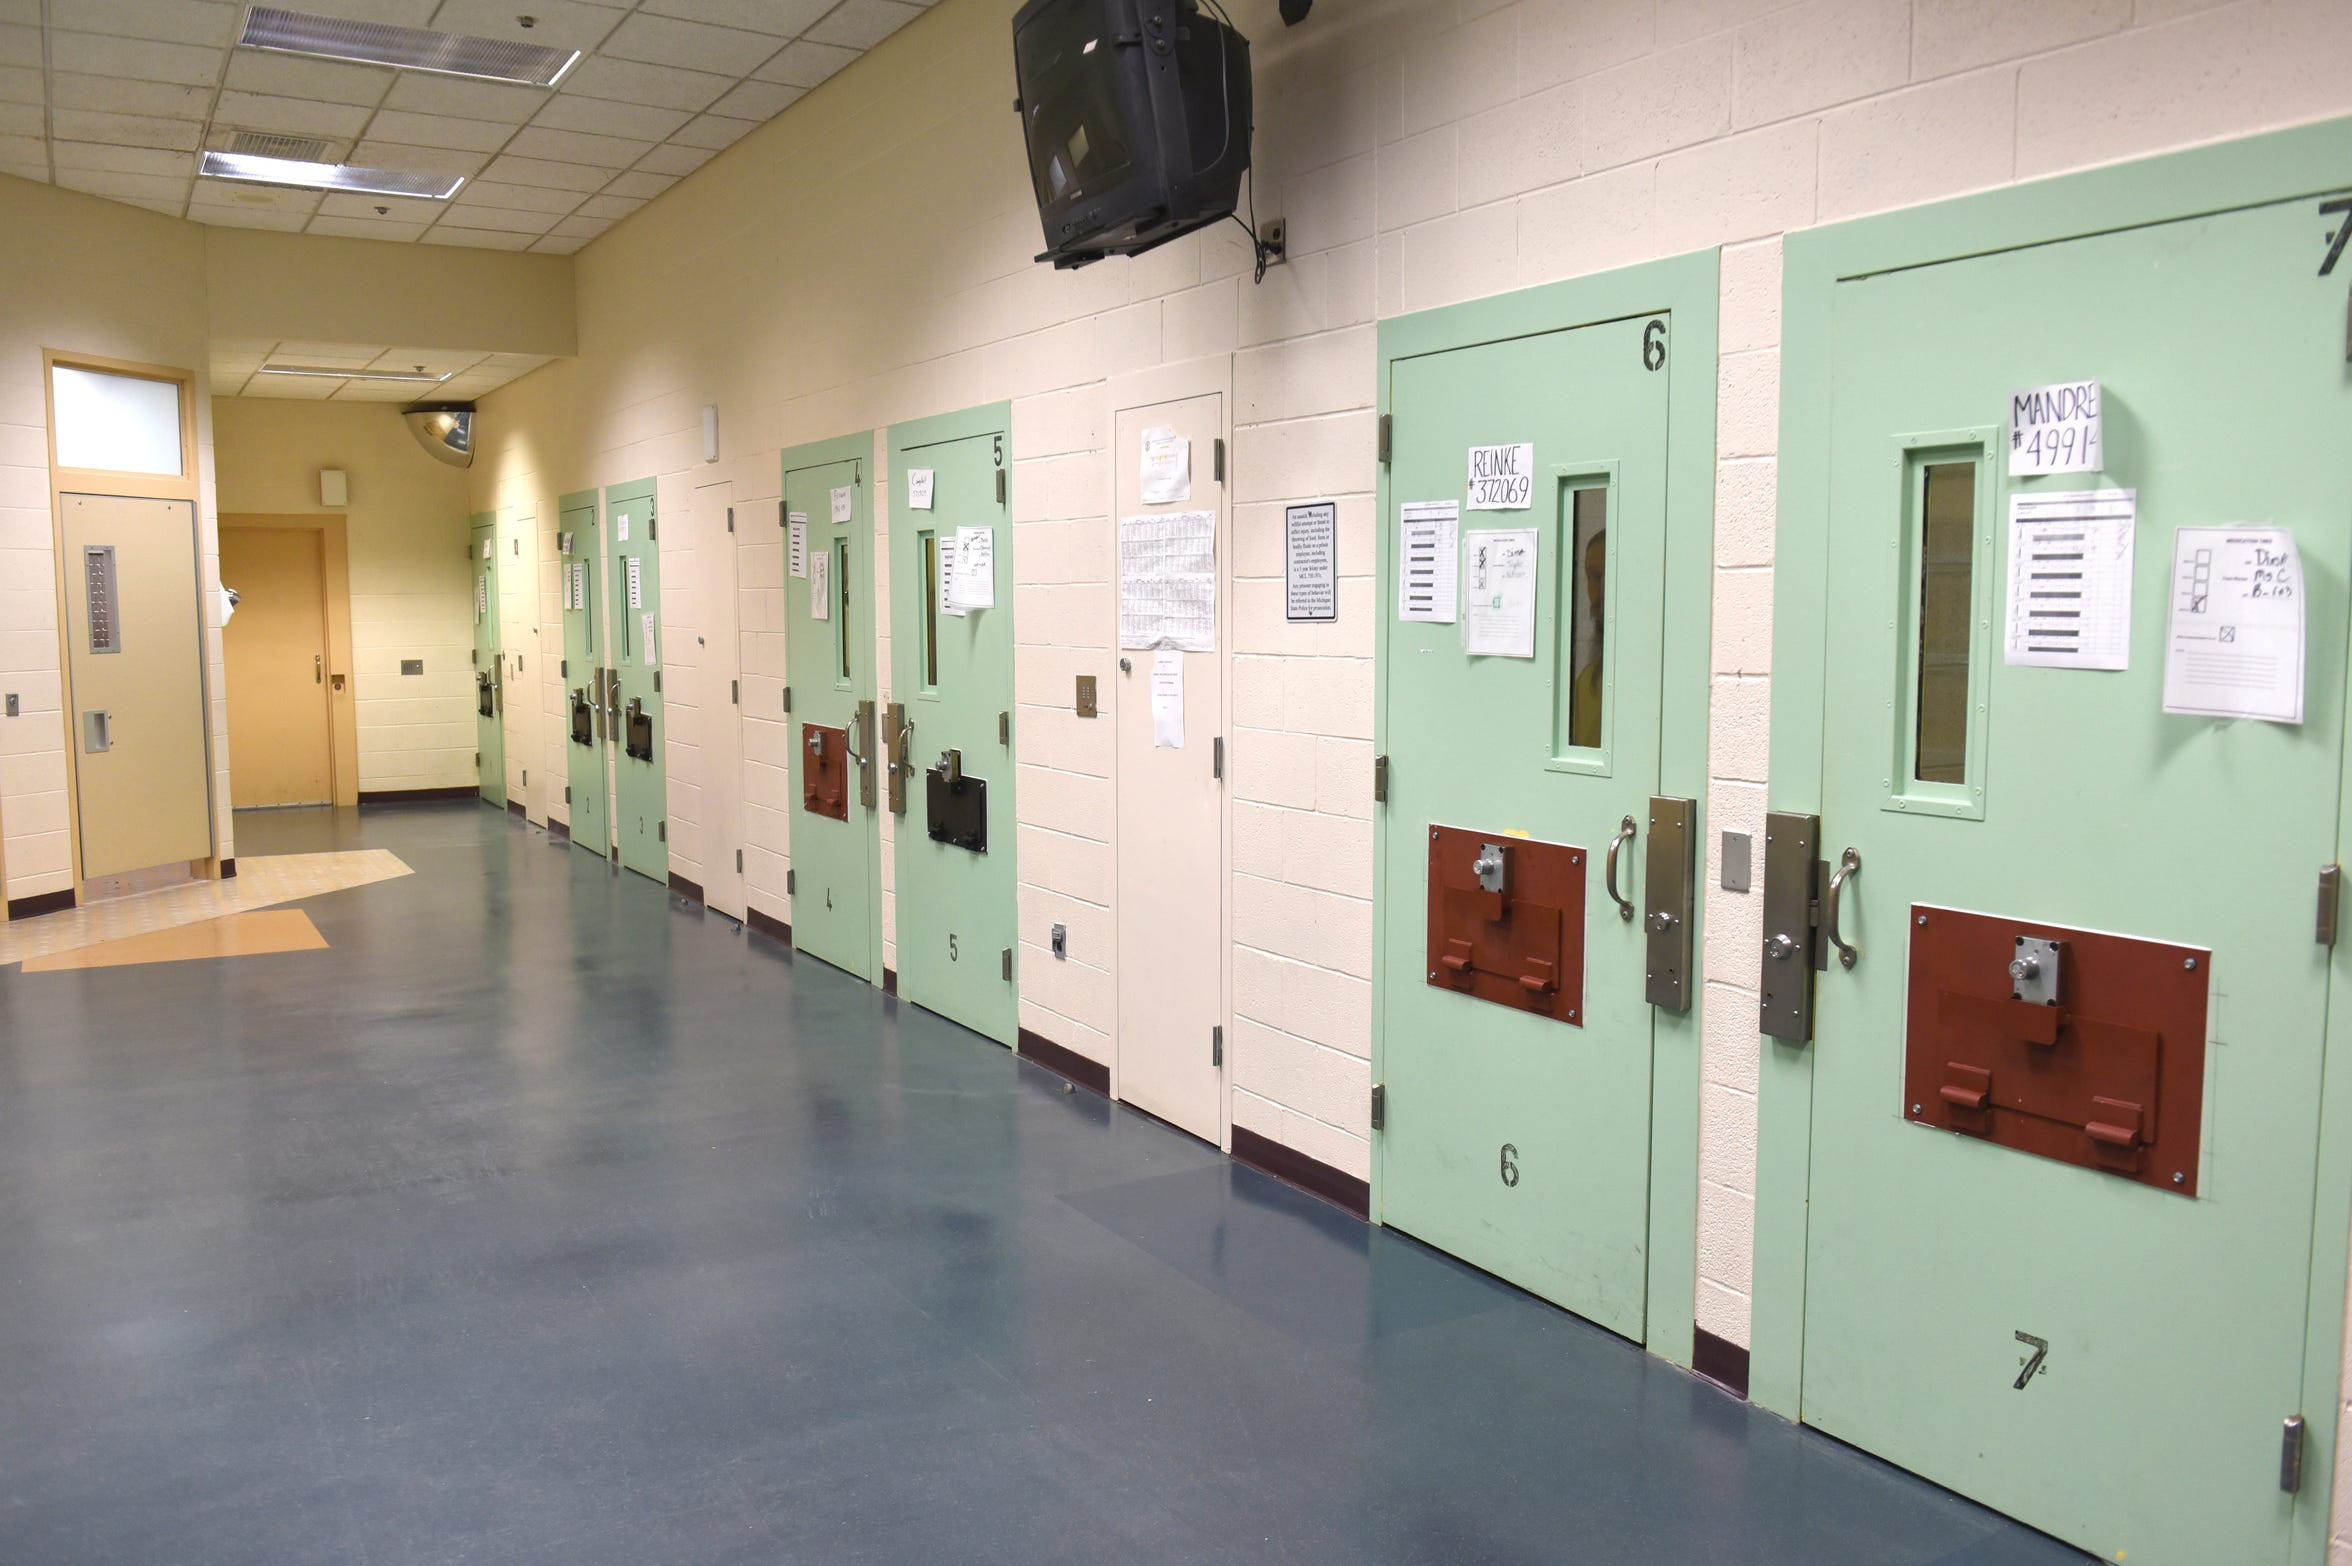 Inmates at Woodland Center Correctional Center, where Michigan's most mentally ill prisoners are treated, are locked in their cells between therapy and activity sessions.